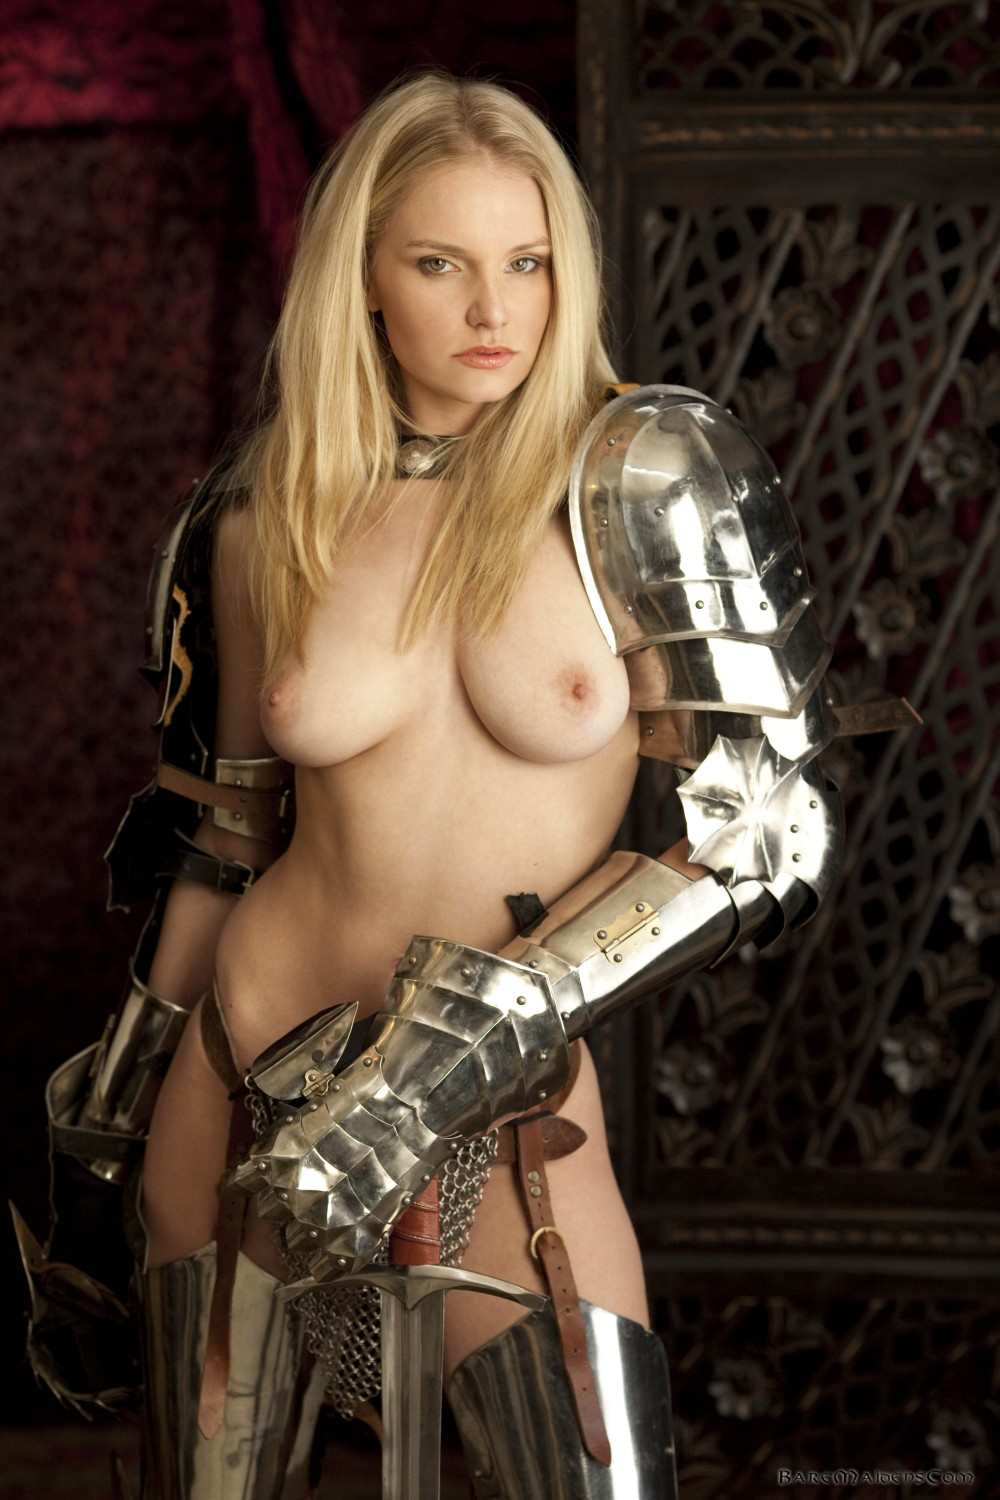 Naked in armor nudes clips